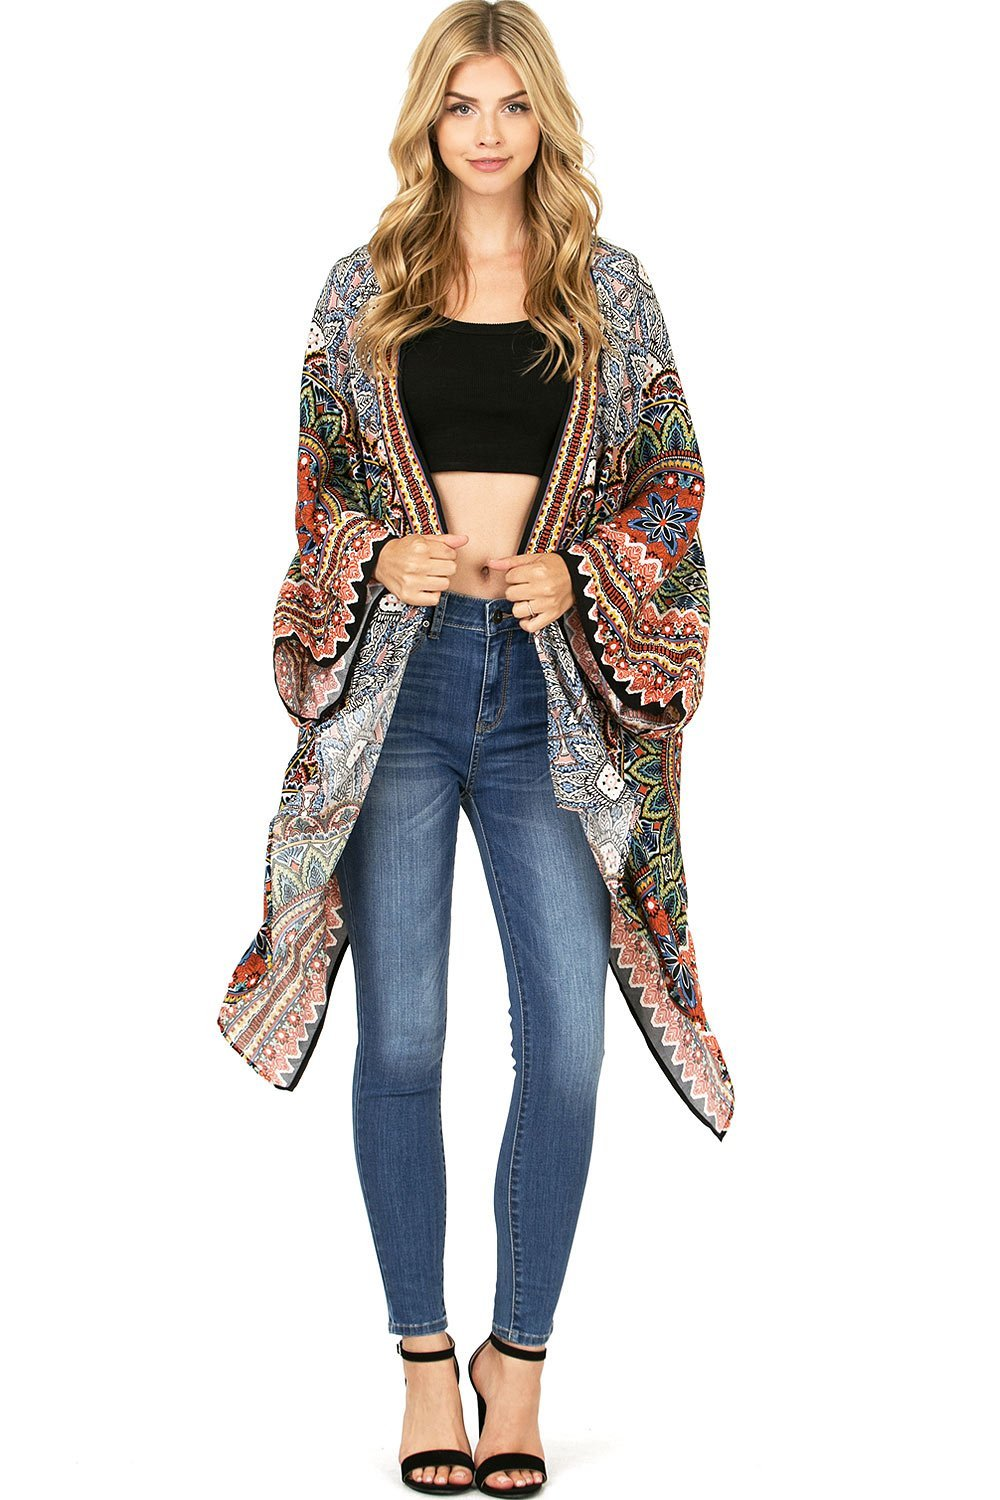 Flying Tomato Women's Bohemian Prints Inspired Drapey Cardigan (M/L, Black Mix)